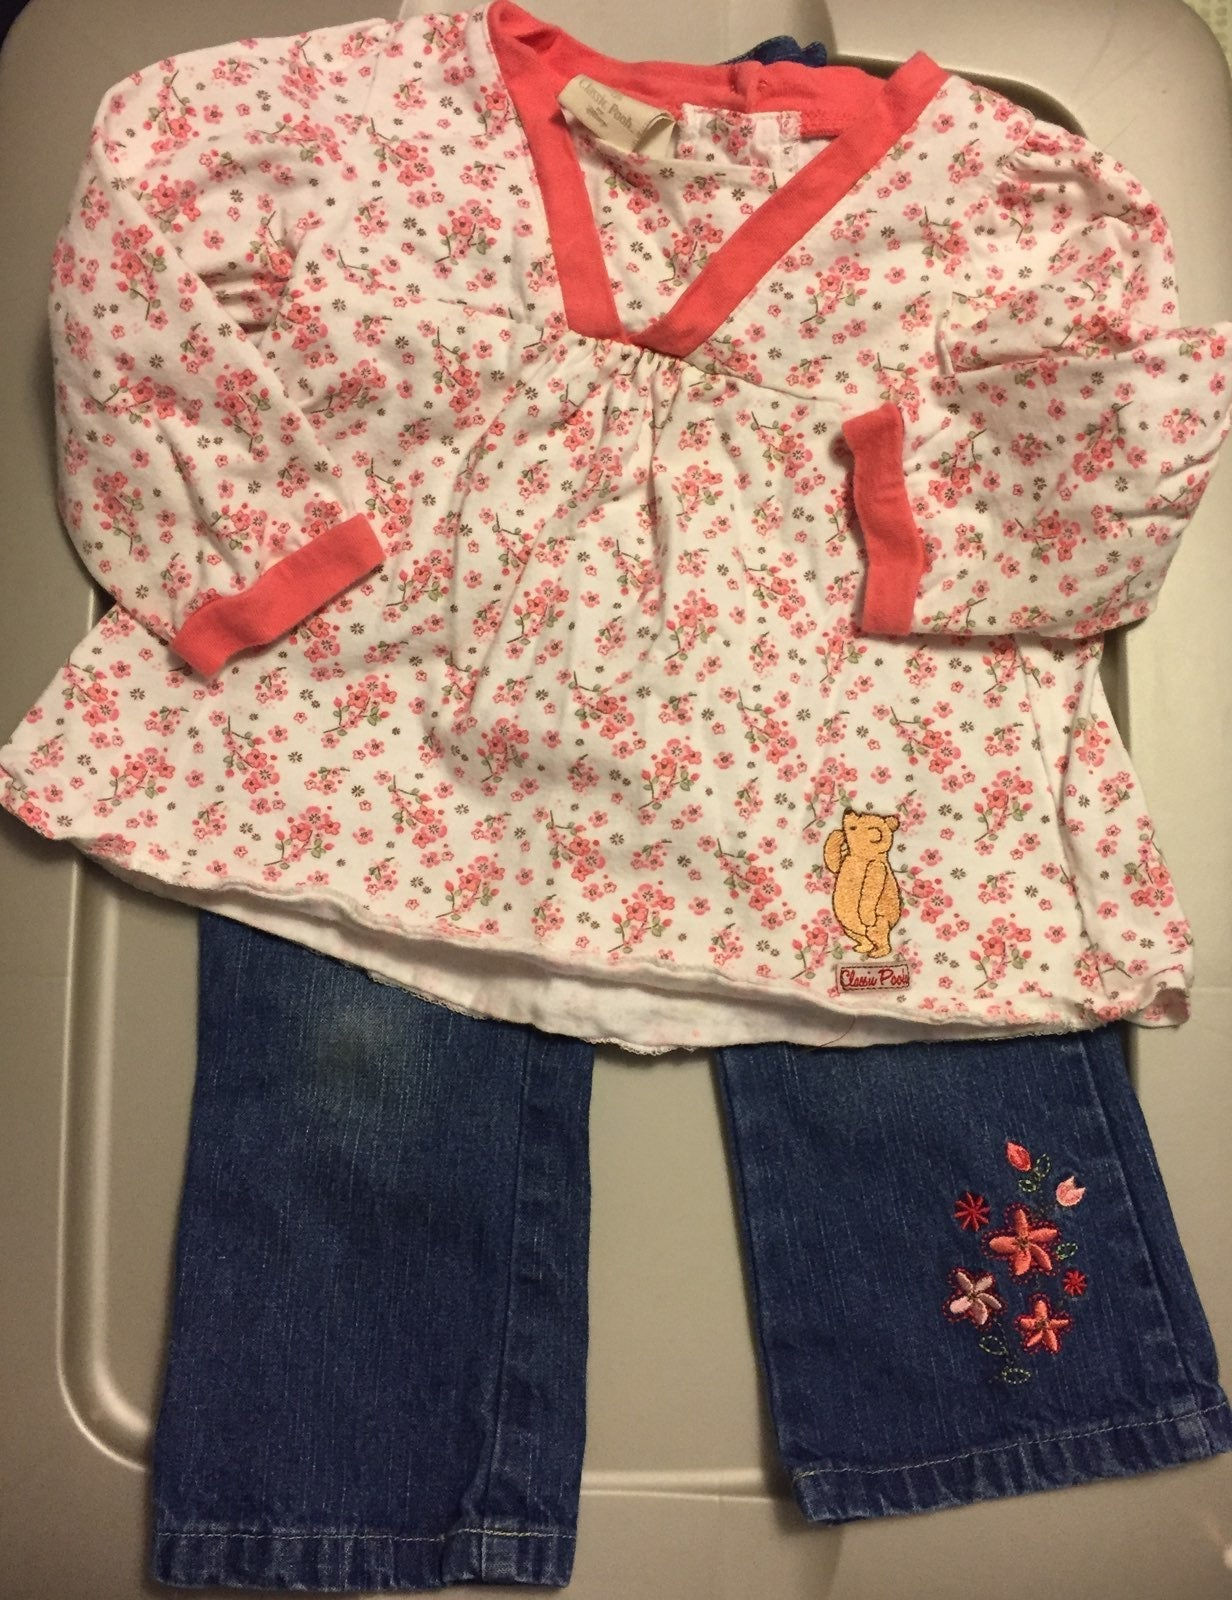 Classic Pooh Girls 2T outfit